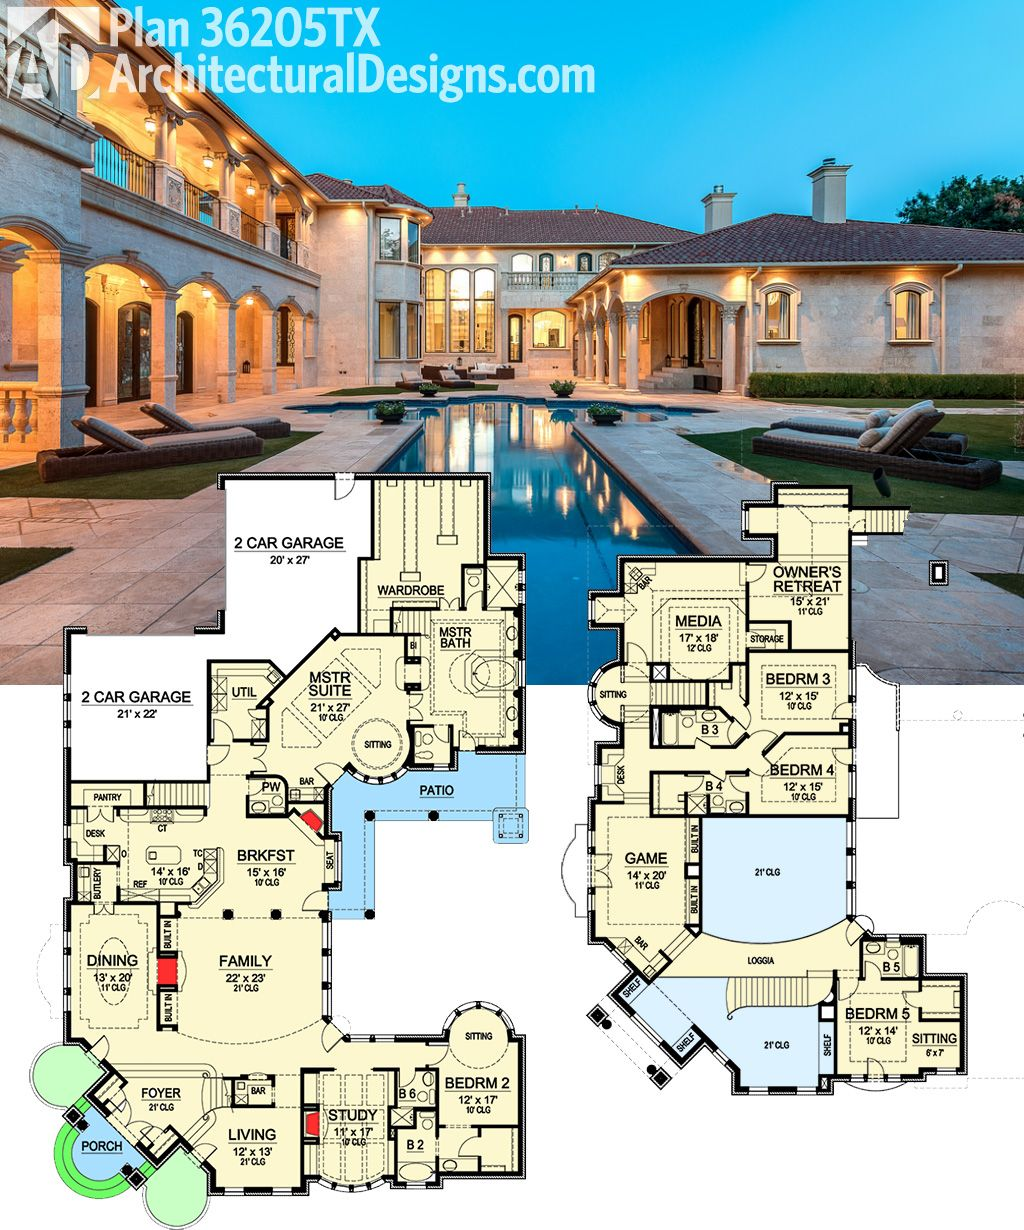 Architectural Designs Luxury House Plan 36205TX gives you ...